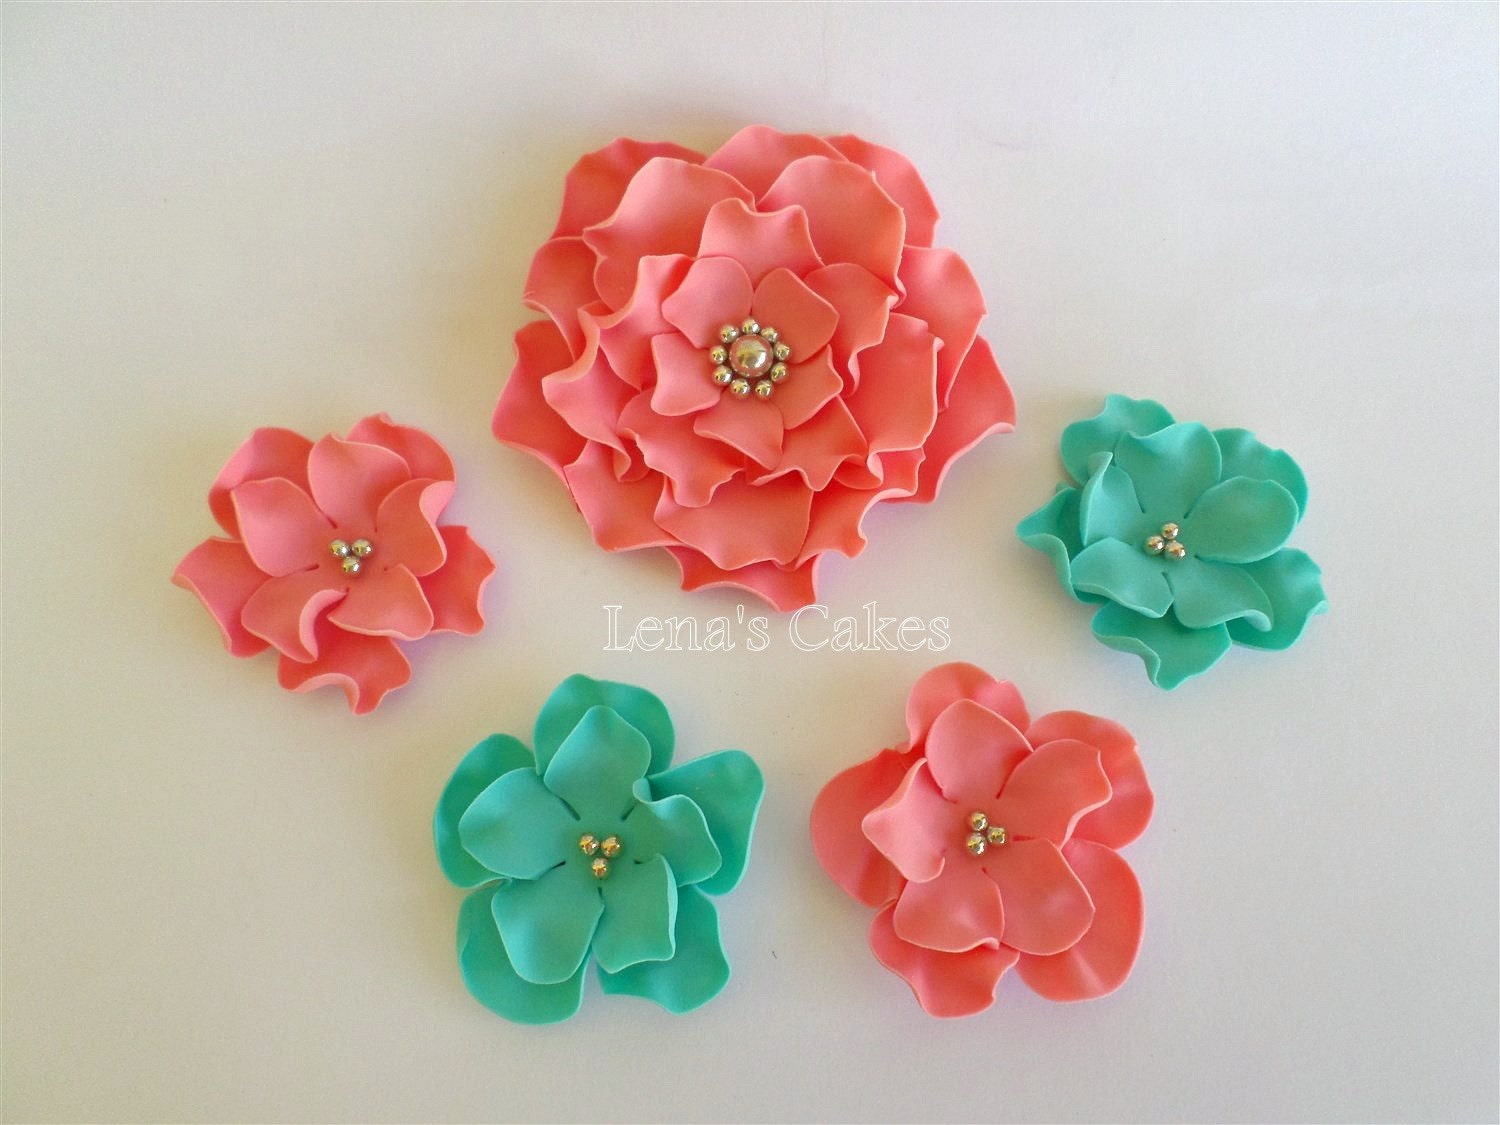 11 sugar flowers for cakes edible fondant flowers roses zoom izmirmasajfo